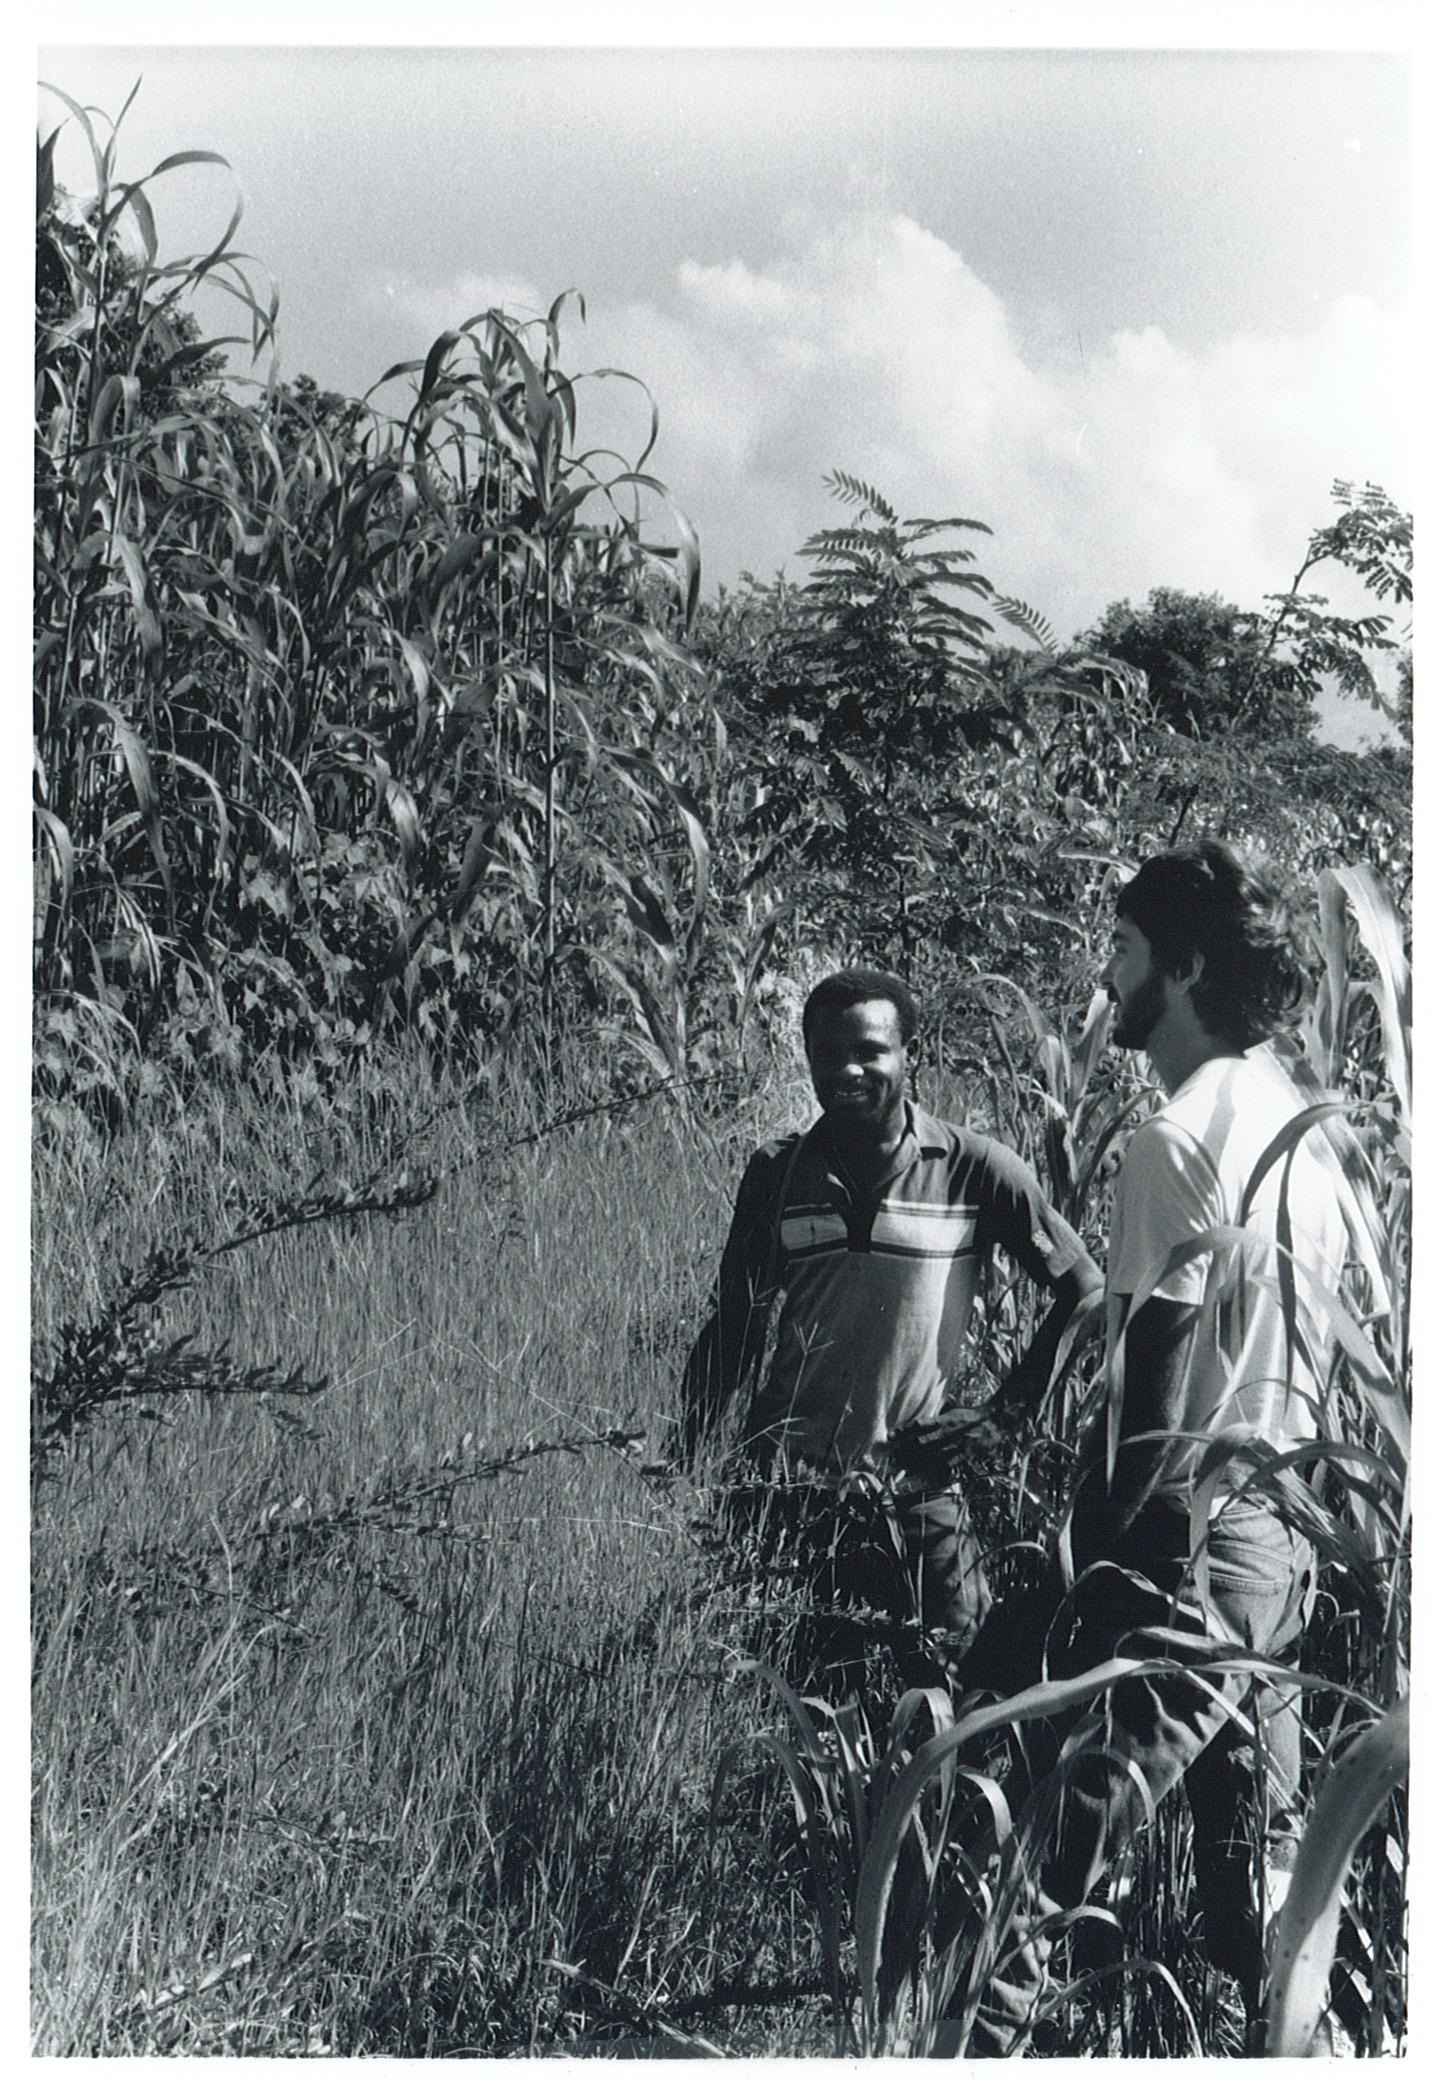 Jean Remy Azor and Jamie Metzler inspect a contour barrier in the Artibonite Valley in 1989.